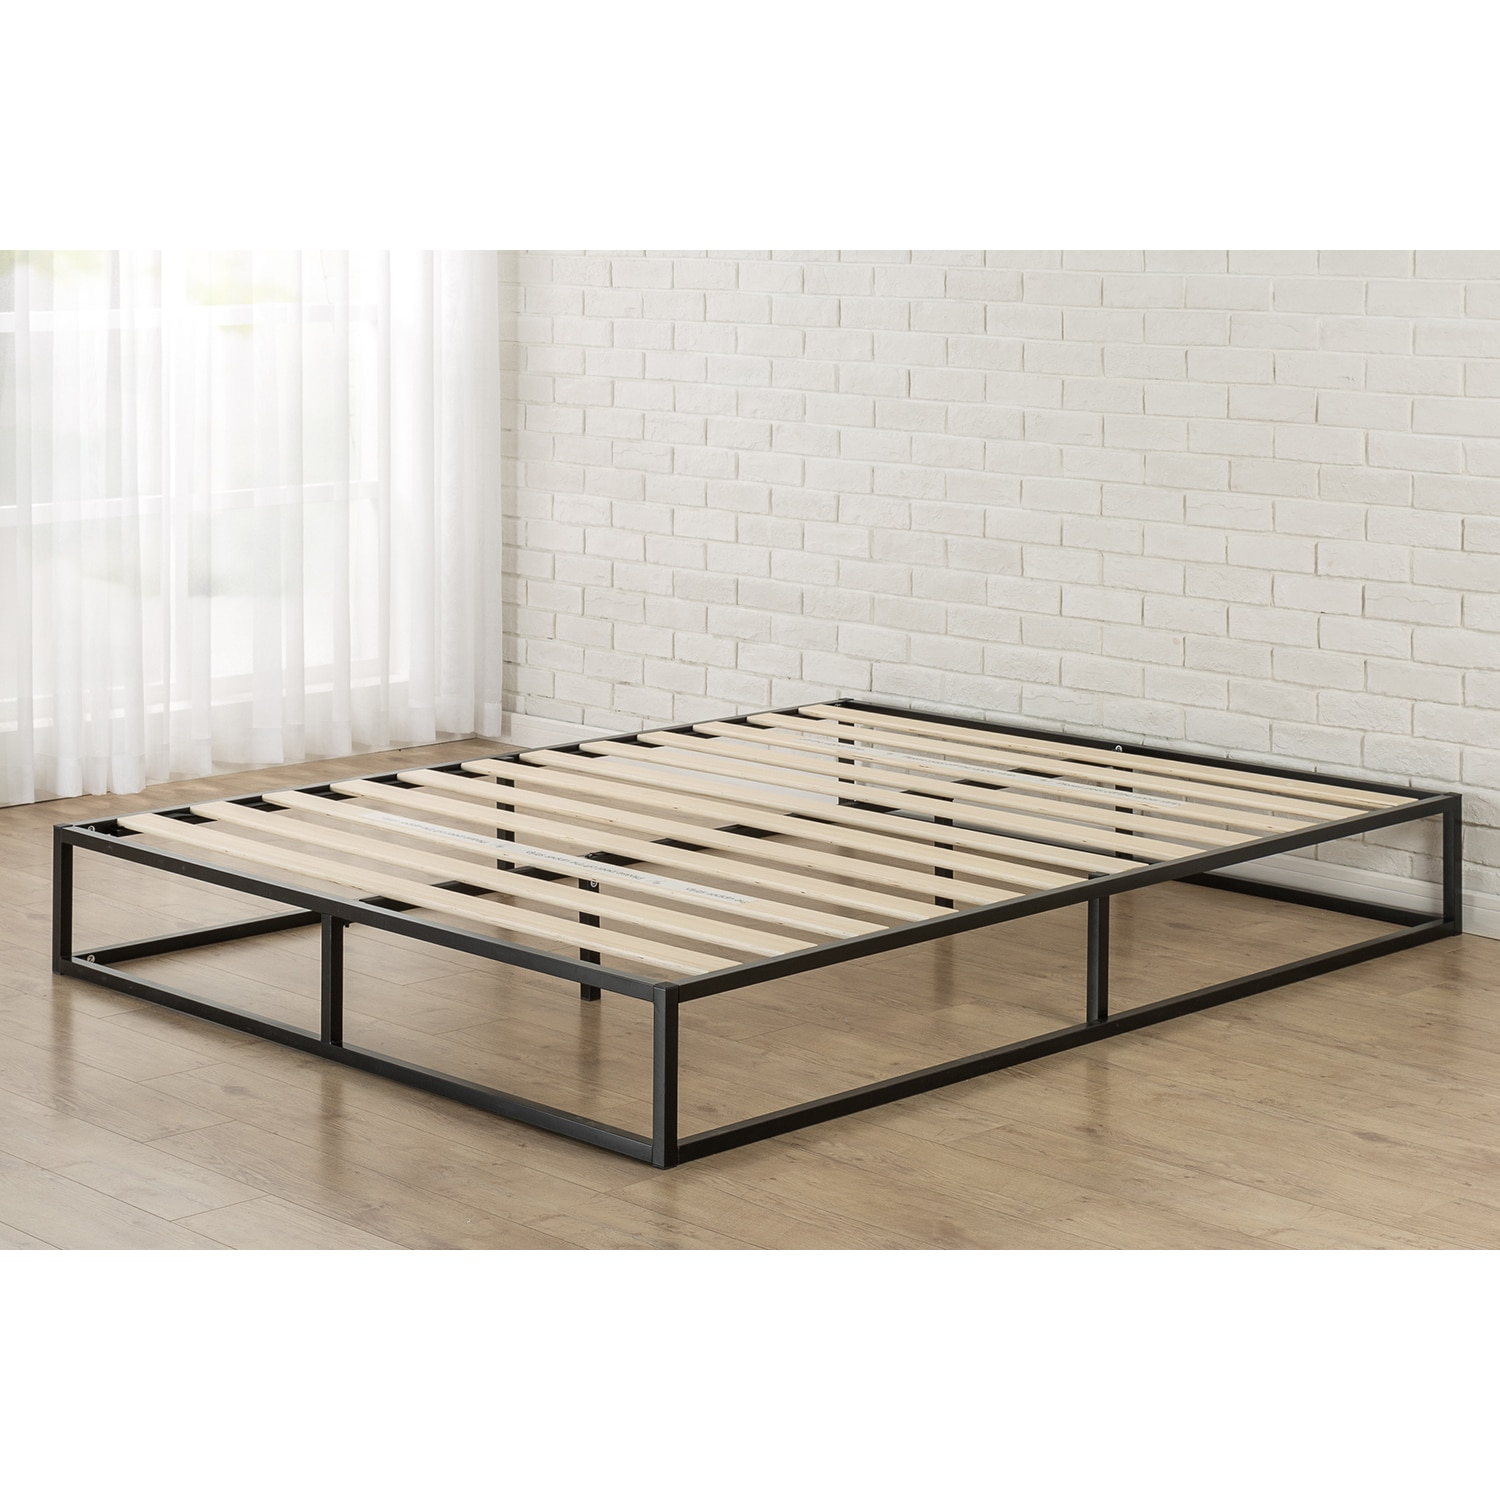 Priage By Zinus Platforma Metal 10 Inch Full Size Bed Frame